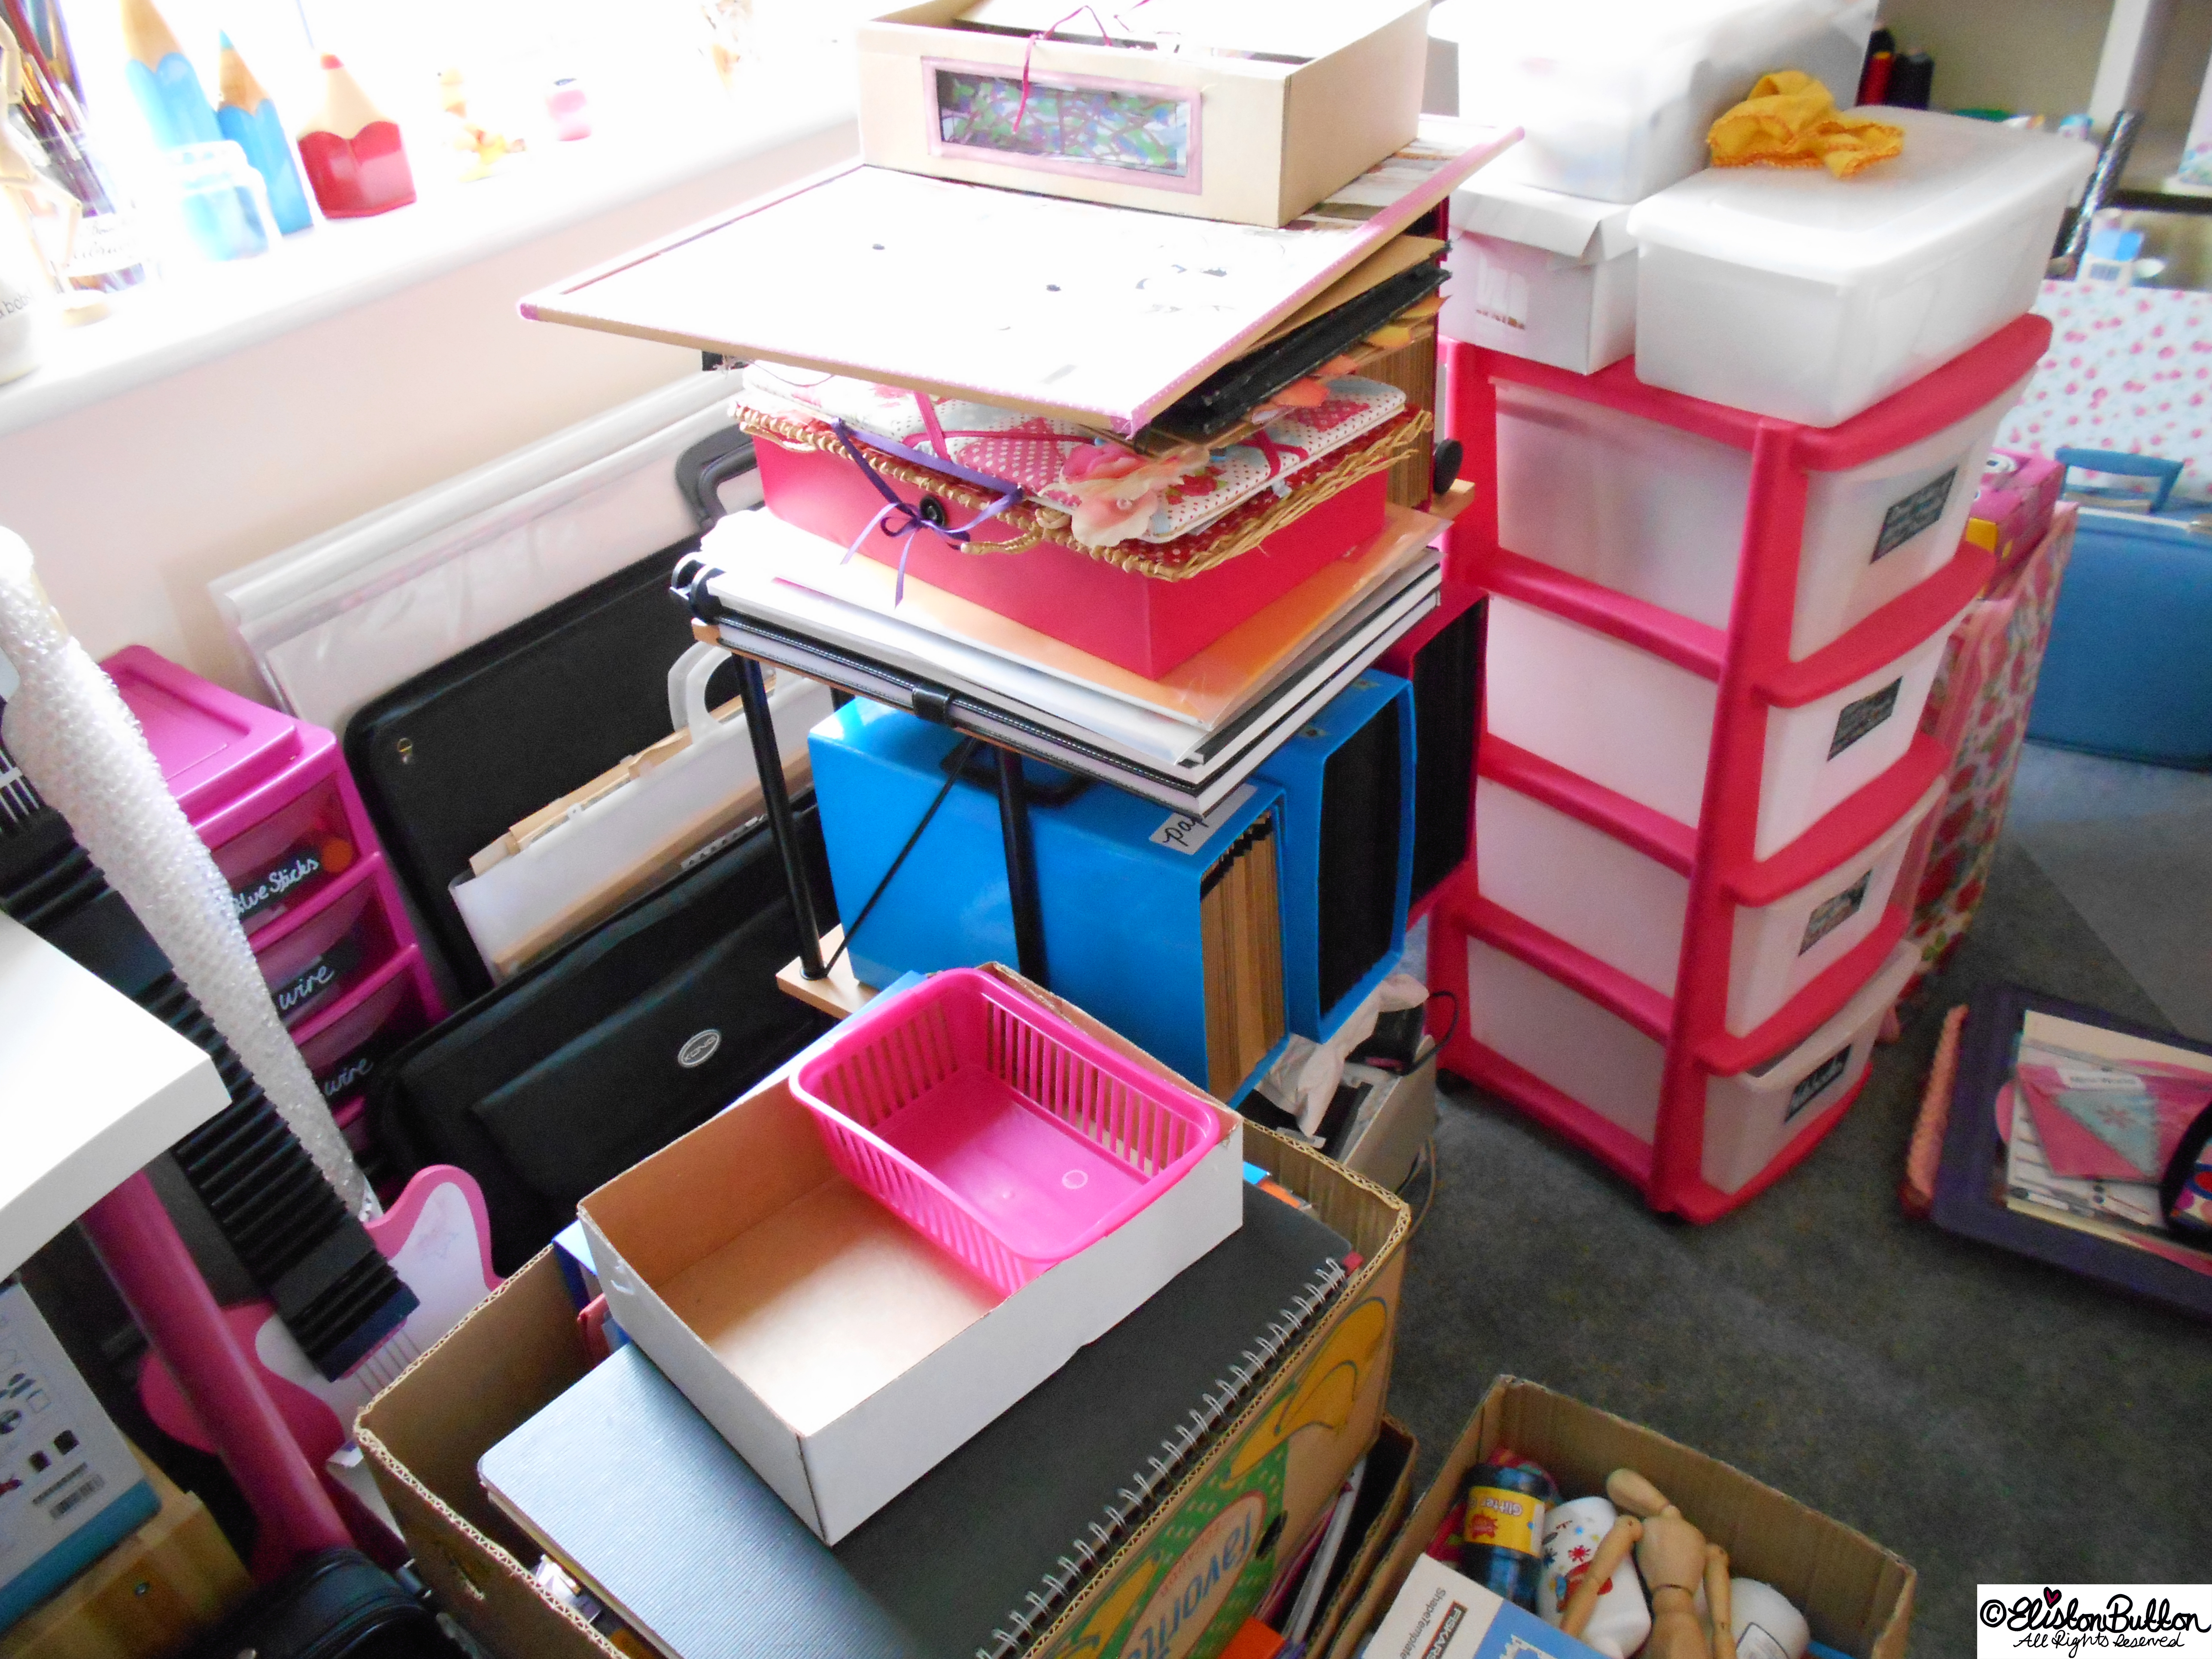 Boxes and Craft Storage - Workspace Wednesday - Studio Update at www.elistonbutton.com - Eliston Button - That Crafty Kid – Art, Design, Craft & Adventure.